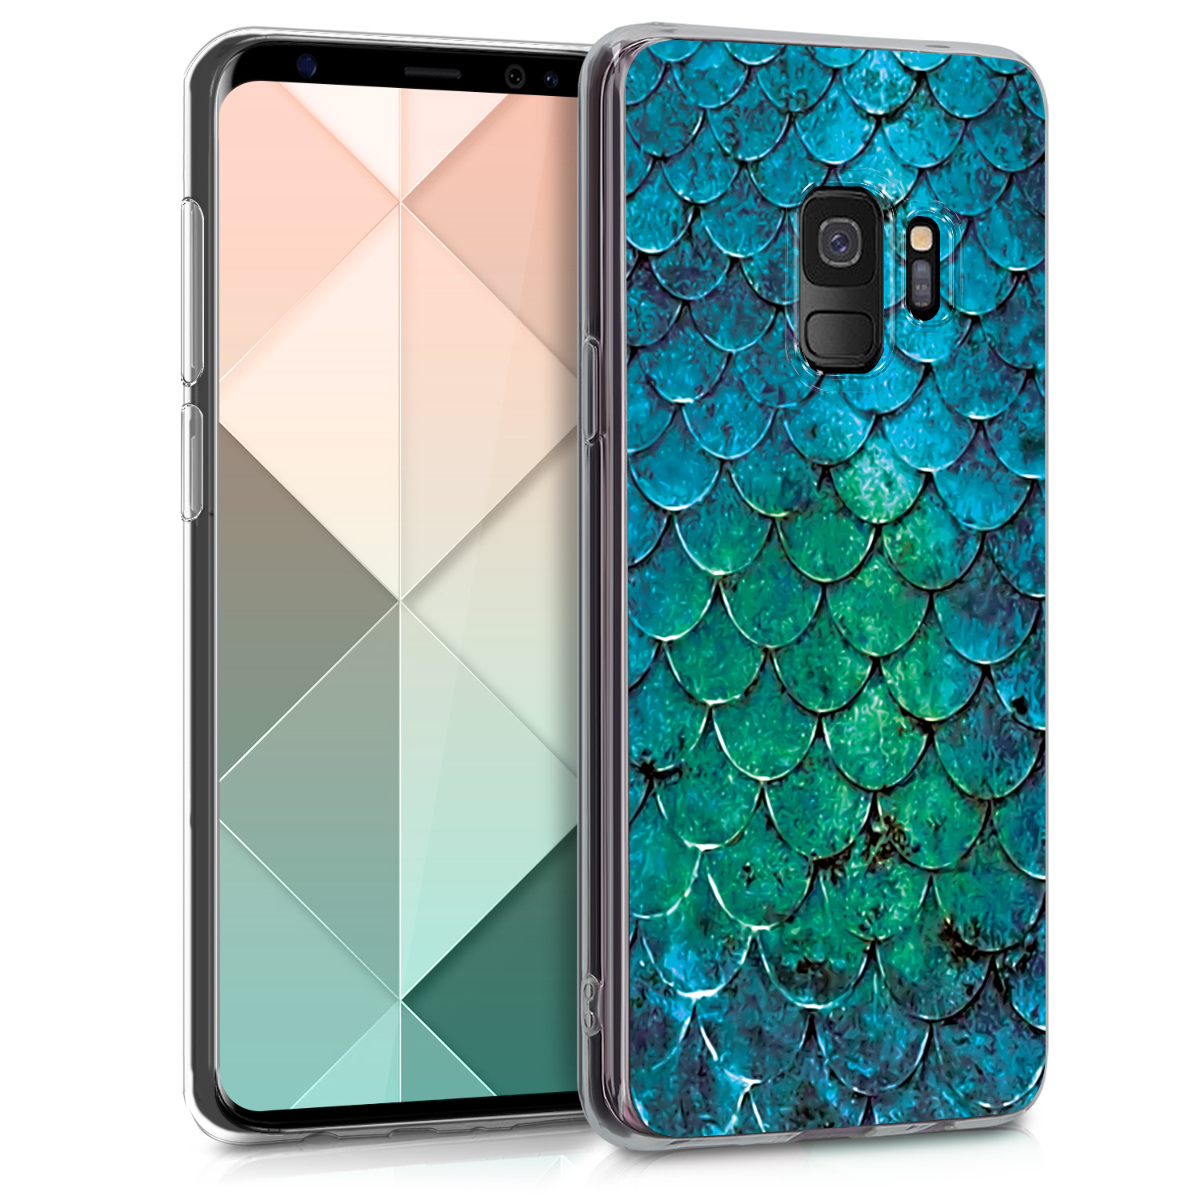 Pouzdro pro Samsung Galaxy S9 - TPU Crystal Clear Back Protective Cover IMD Design - Mermaid Scales Turquoise / Blue / Green